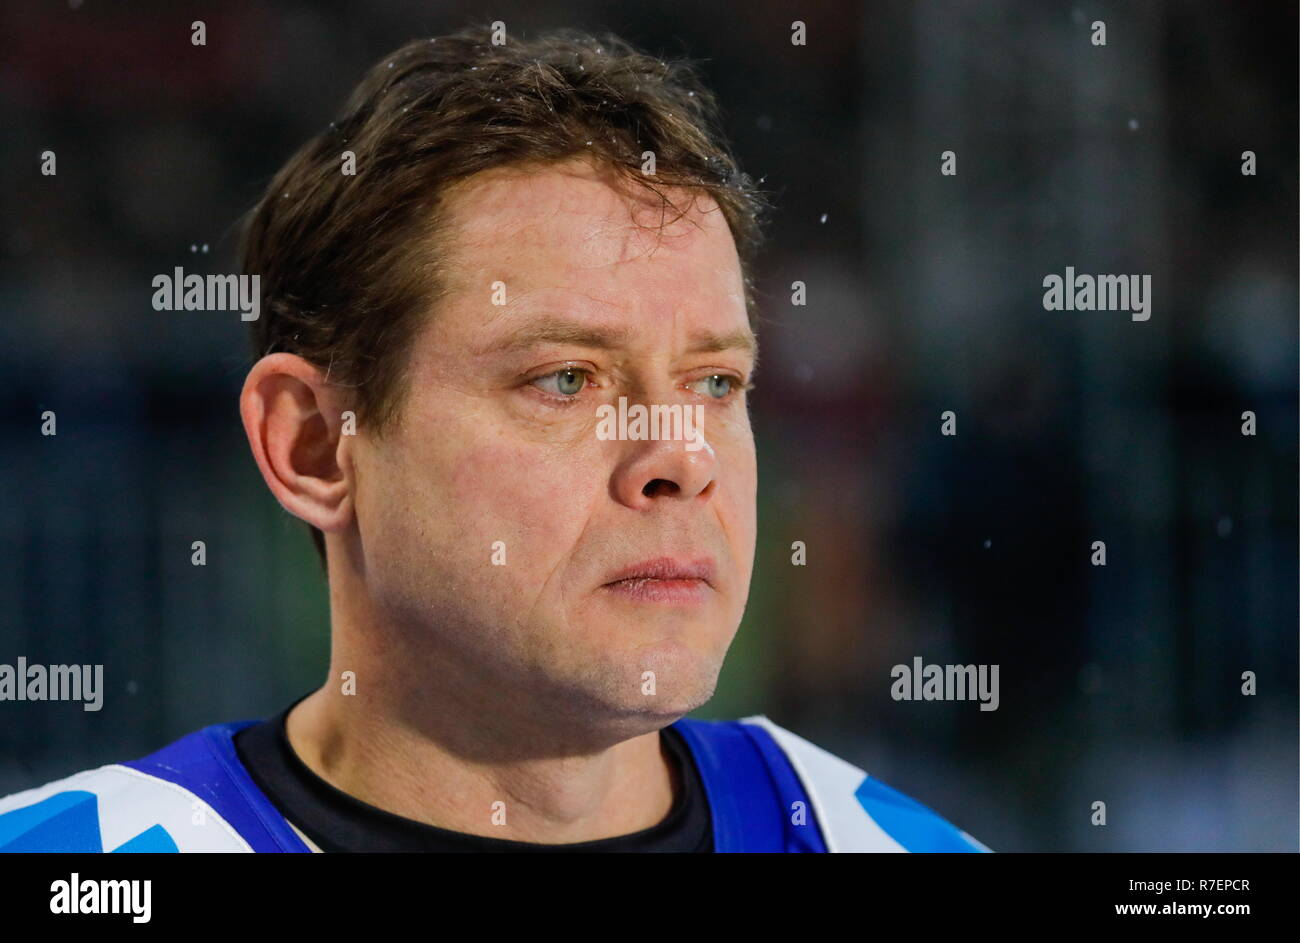 Moscow, Russia. 09th Dec, 2018. World Legends Hockey League President Pavel Bure during the 5th Legends Cup ice hockey tournament at the Luzhki Club ice rink; held for retired senior ice hockey players, this year's tournament marks the 100th birth anniversary of Soviet ice hockey player and coach Anatoly Tarasov (1918-1995). Mikhail Japaridze/TASS Credit: ITAR-TASS News Agency/Alamy Live News - Stock Image